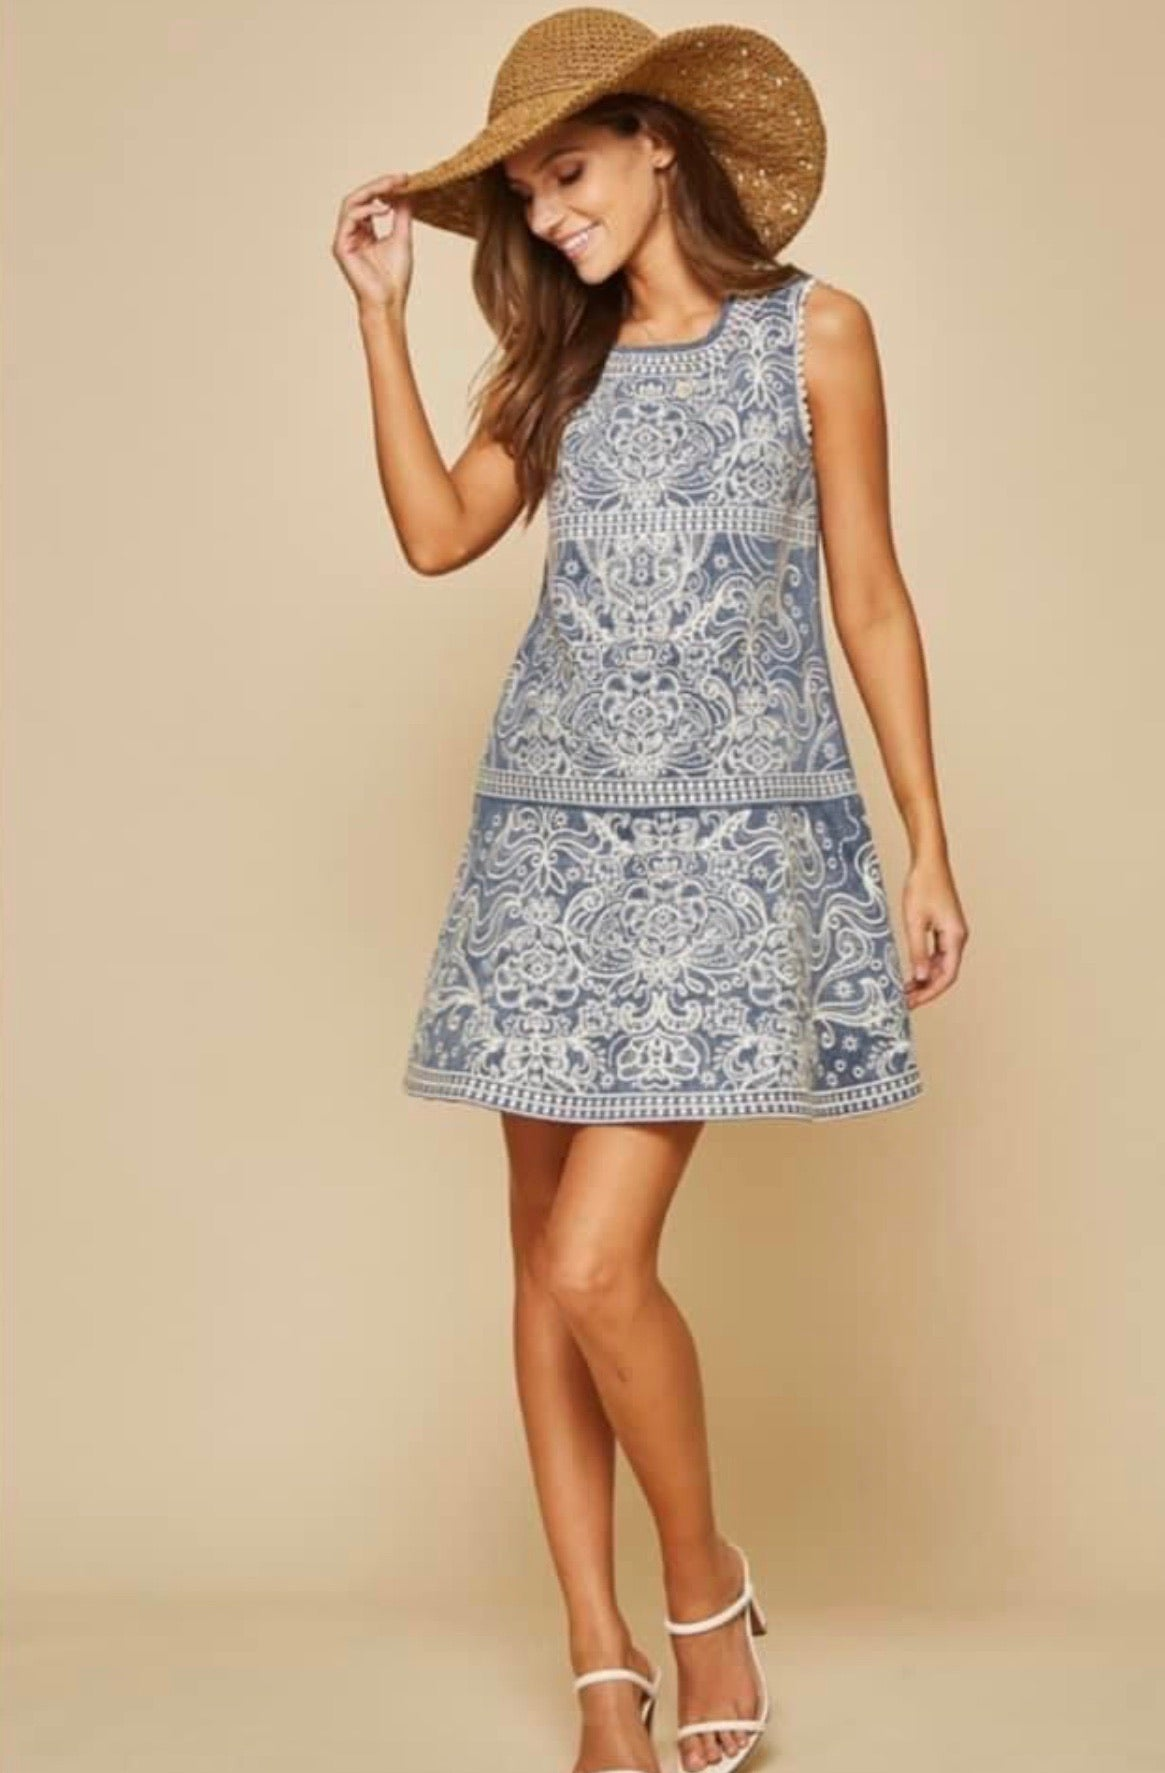 Savanna Jane Denim Embroidered Dress